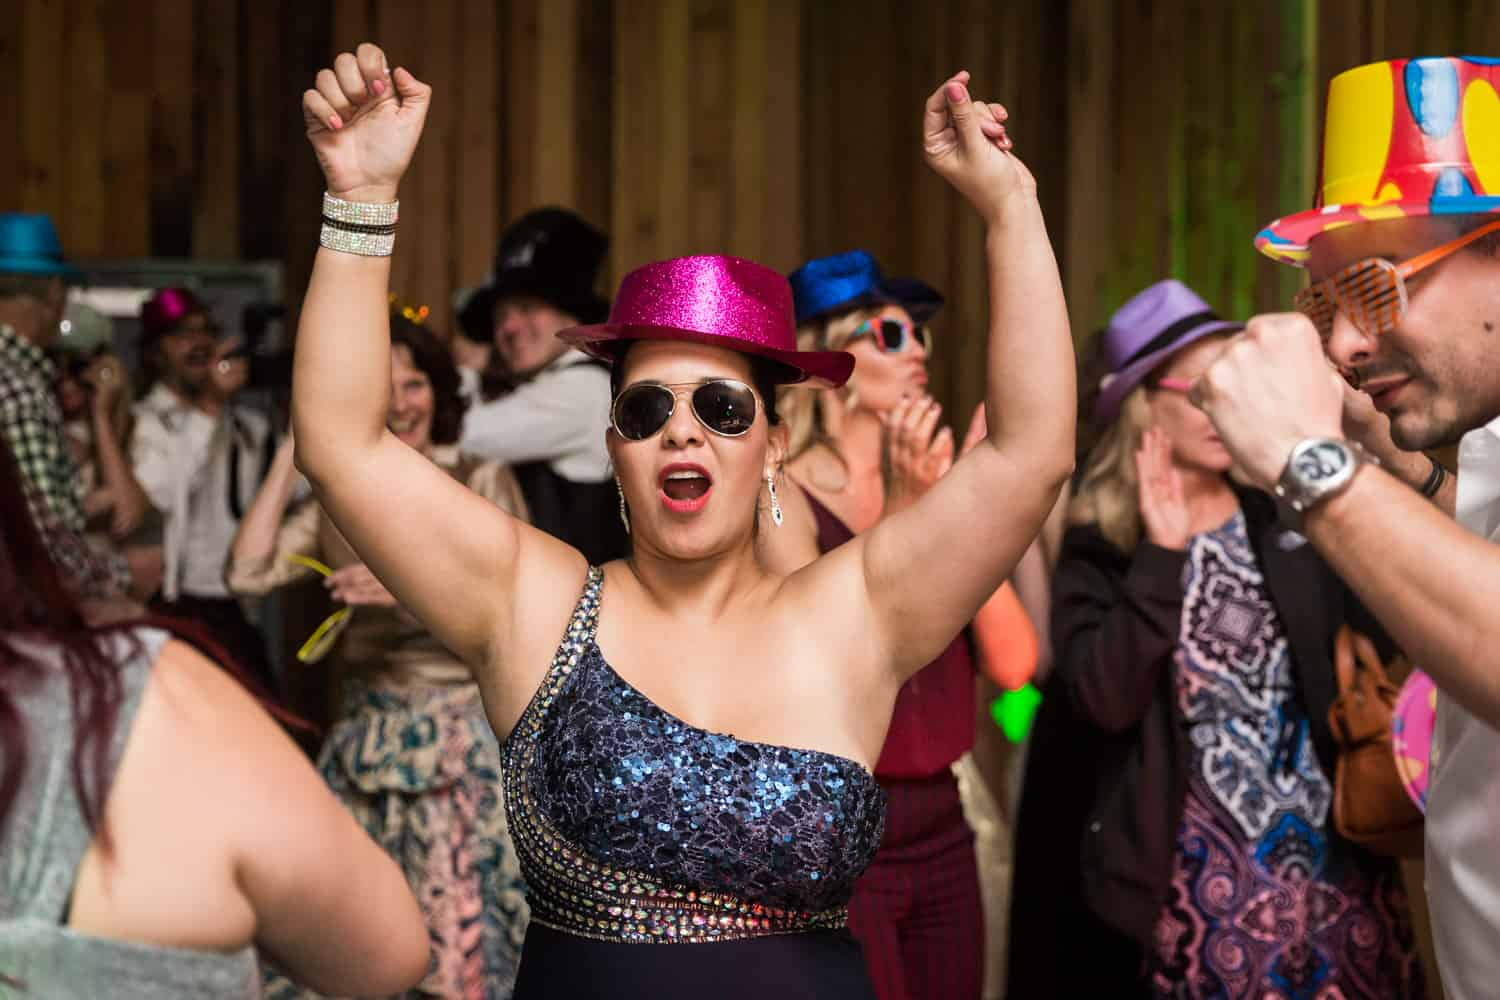 Woman wearing hat and sunglasses dancing with hands in air